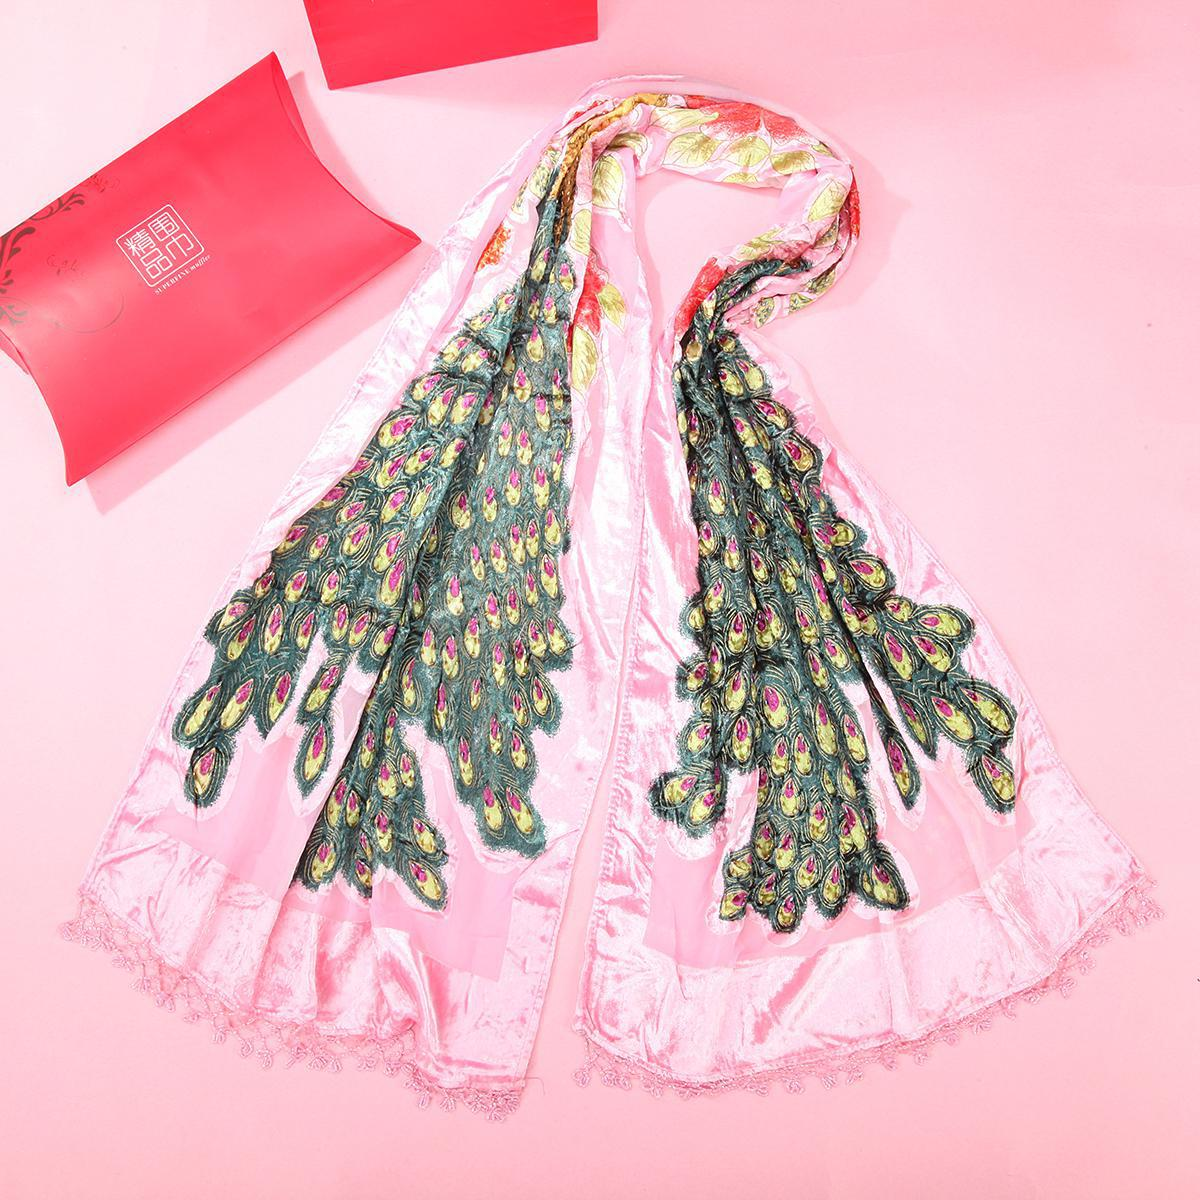 Pink Chinese Women's Wrap Velvet Silk Shawl Pashmina Bufanda Peacock Beads Scarf Soft Echarpes With Tassels Embroidery Shawls